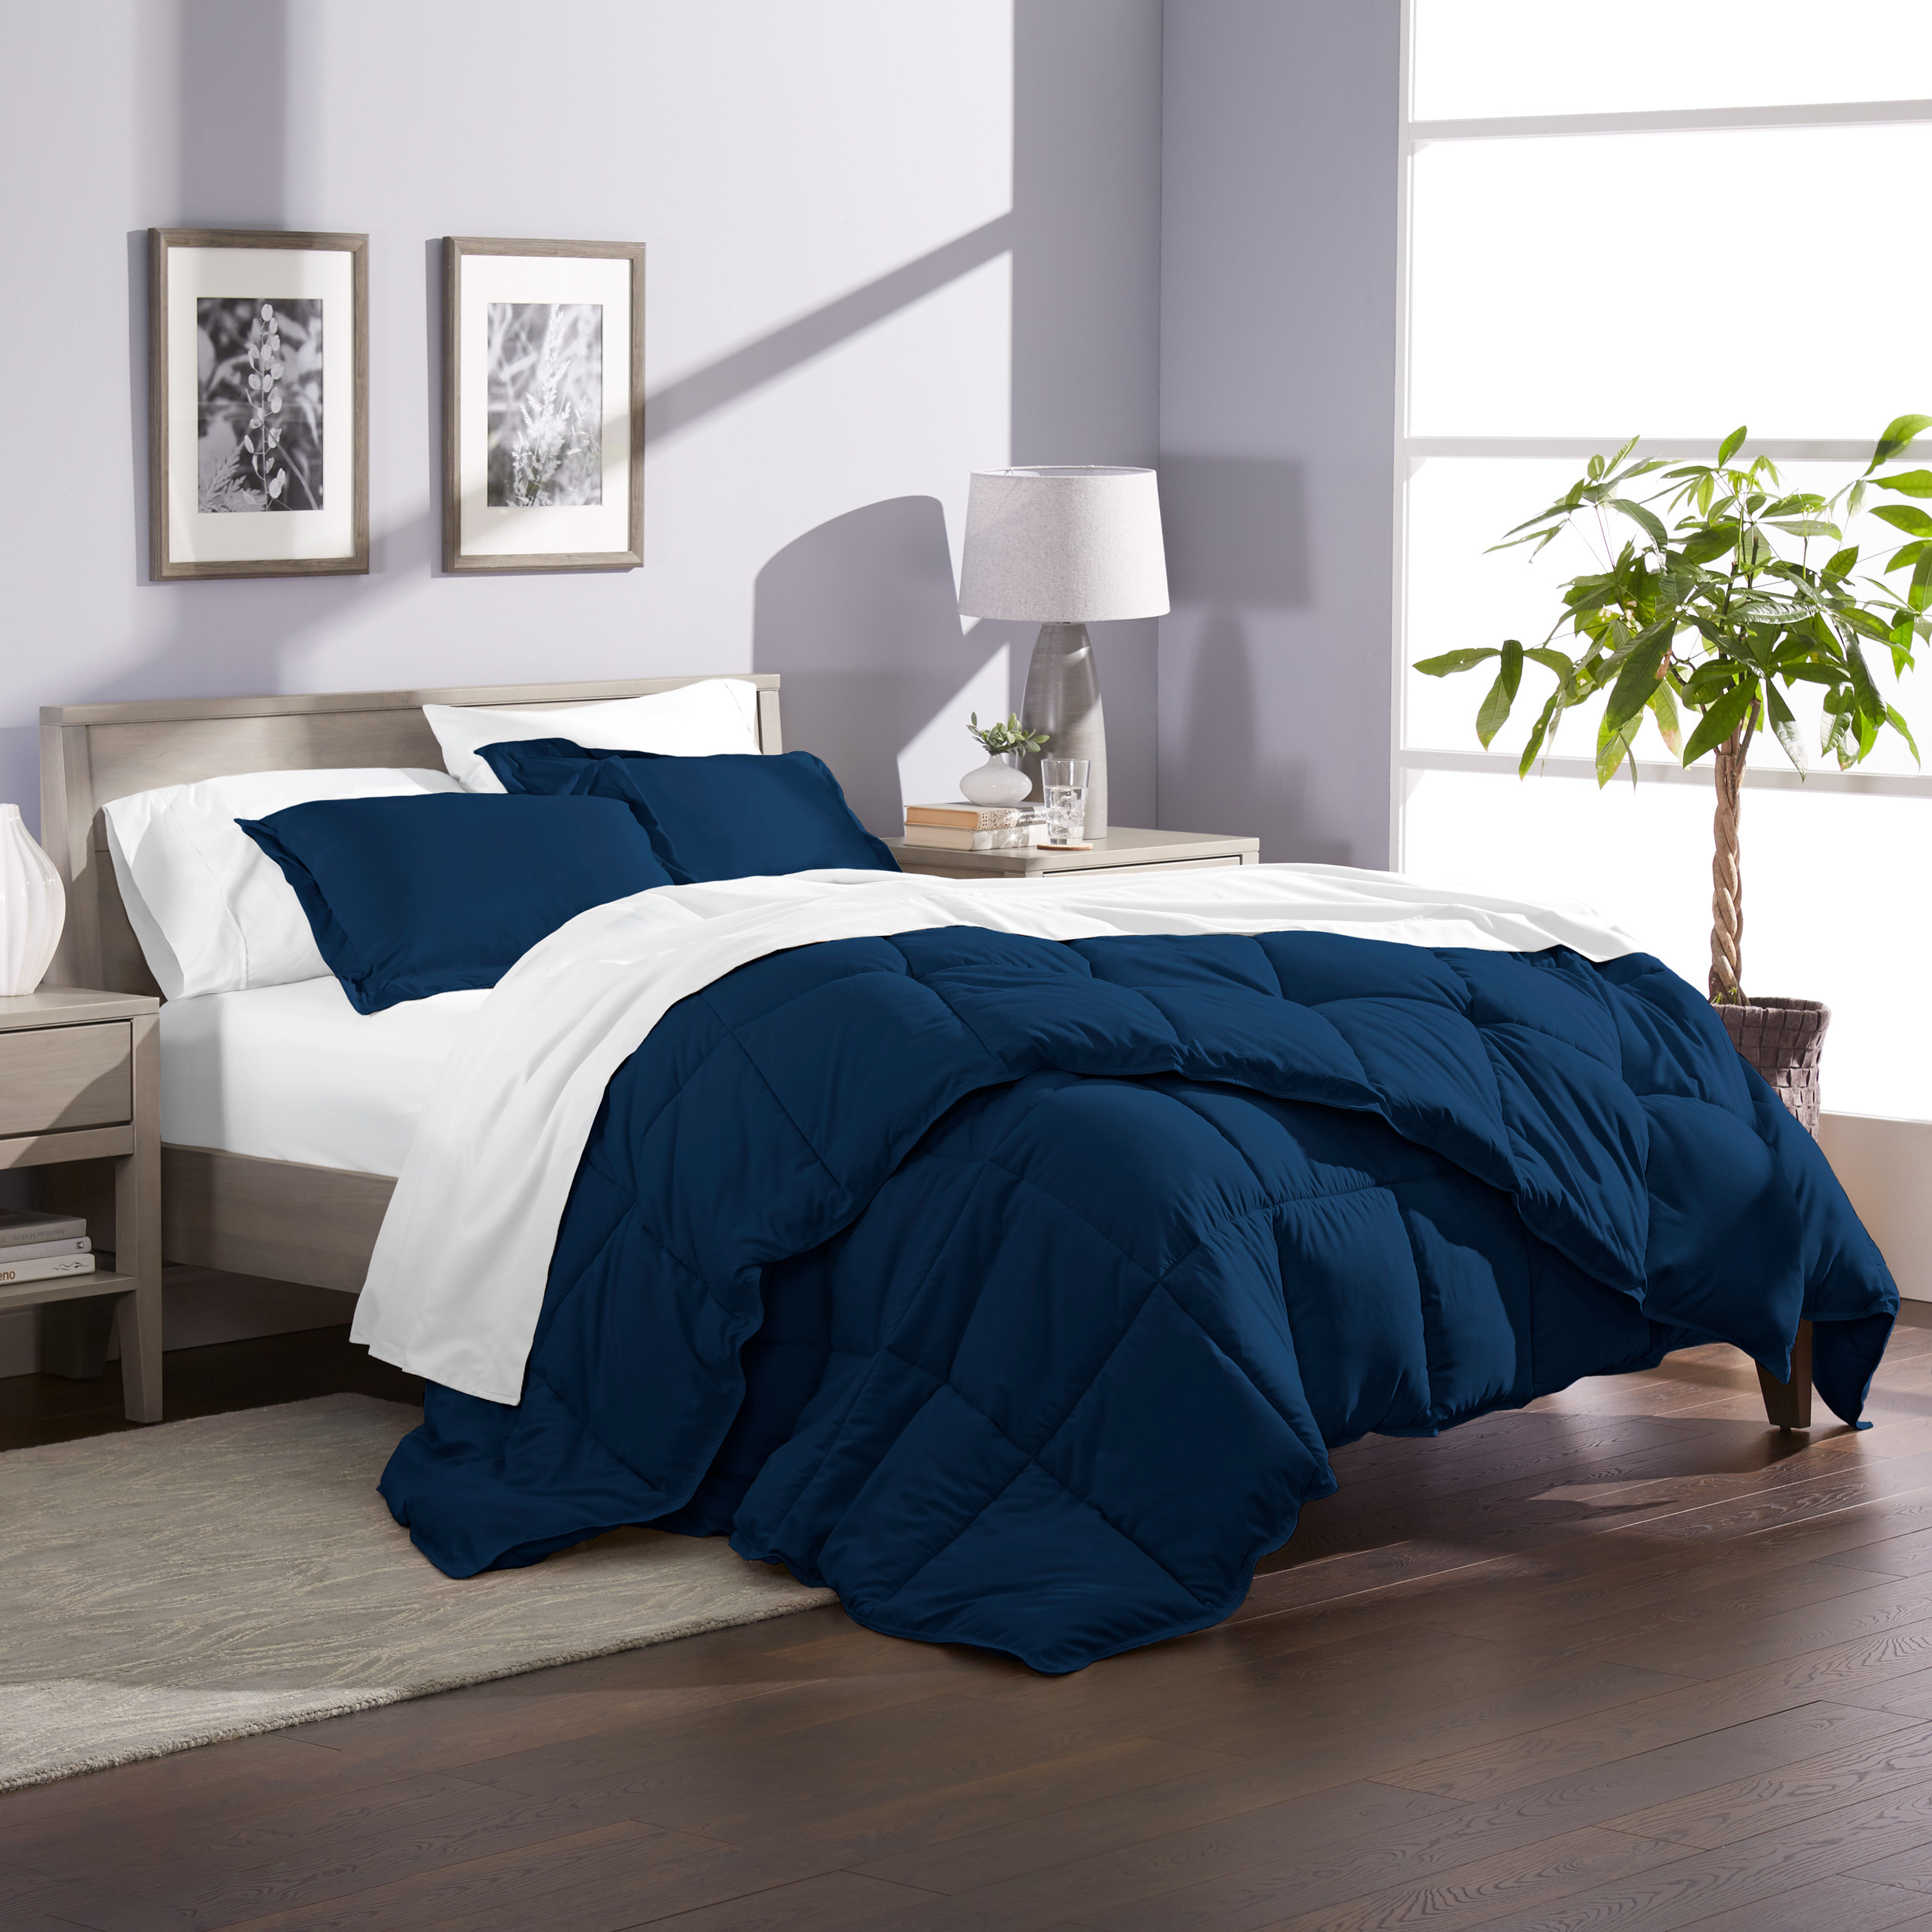 the comforter in navy on a bed